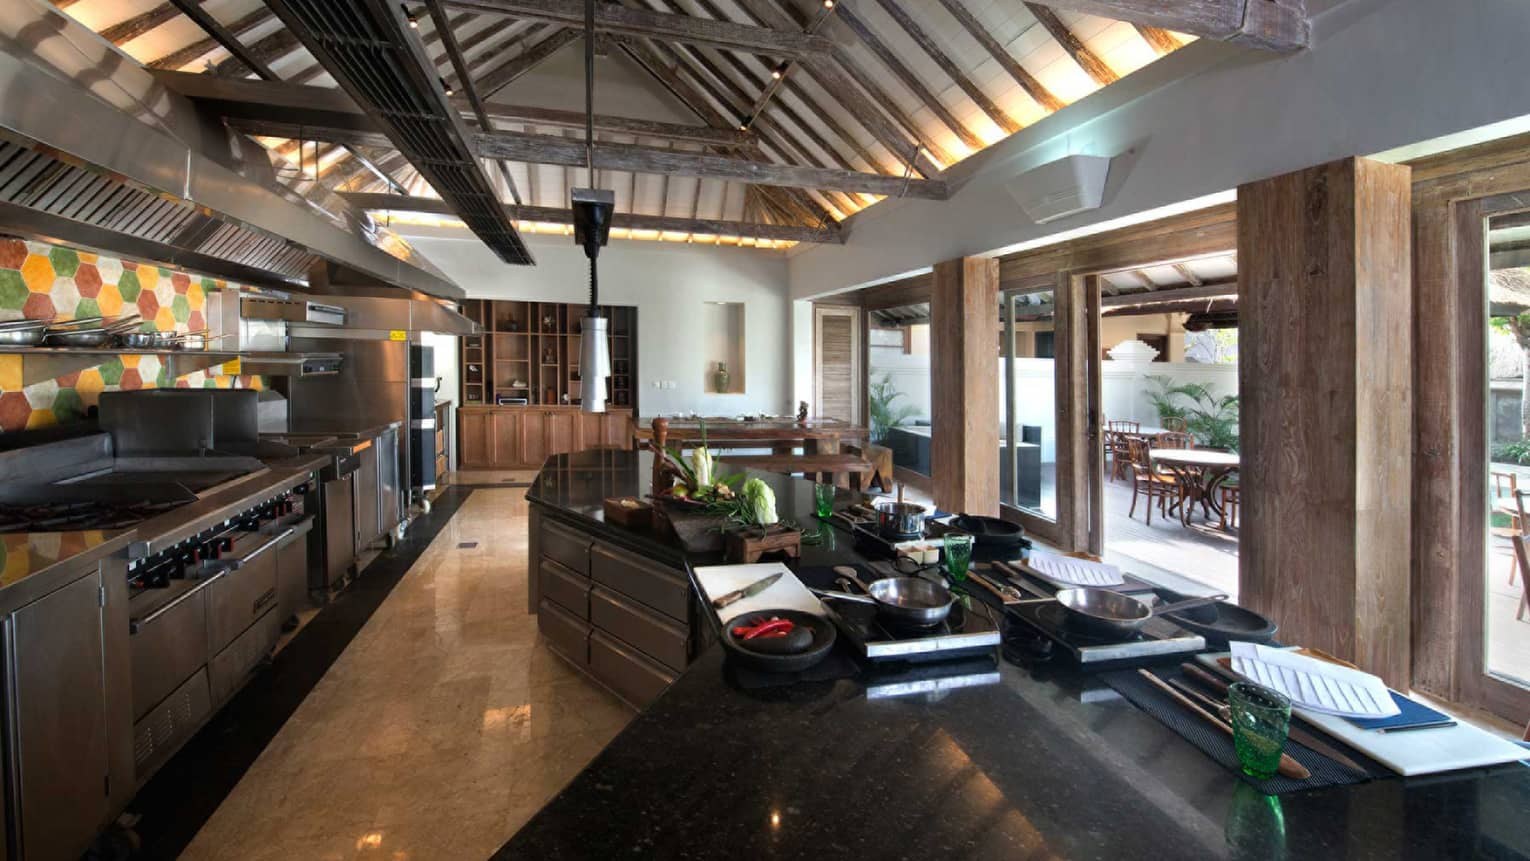 Jimbaran Bay Cooking Academy kitchen with stainless steel appliances, black marble counters, large windows